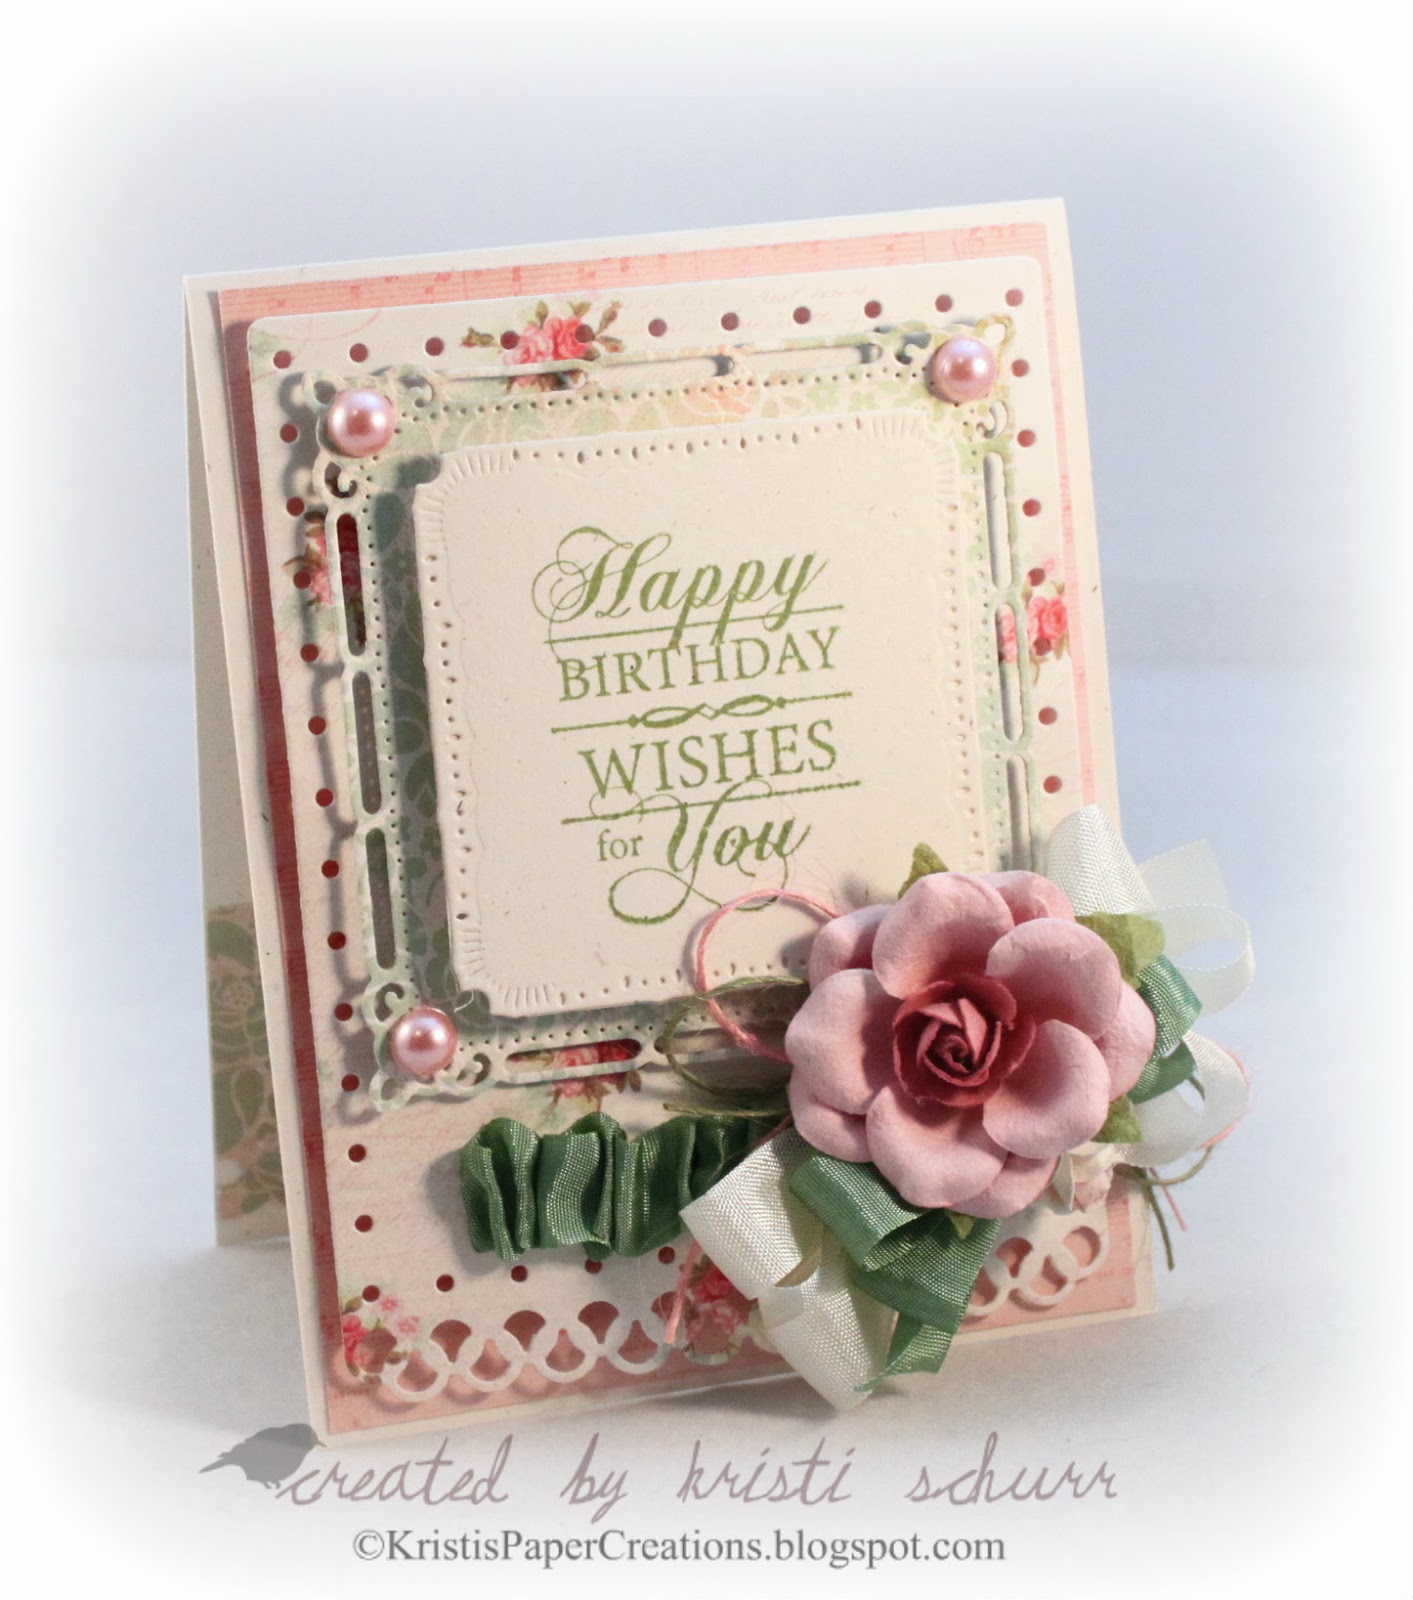 Kristis Paper Creations JustRite Papercraft September Release – Papercraft Birthday Card